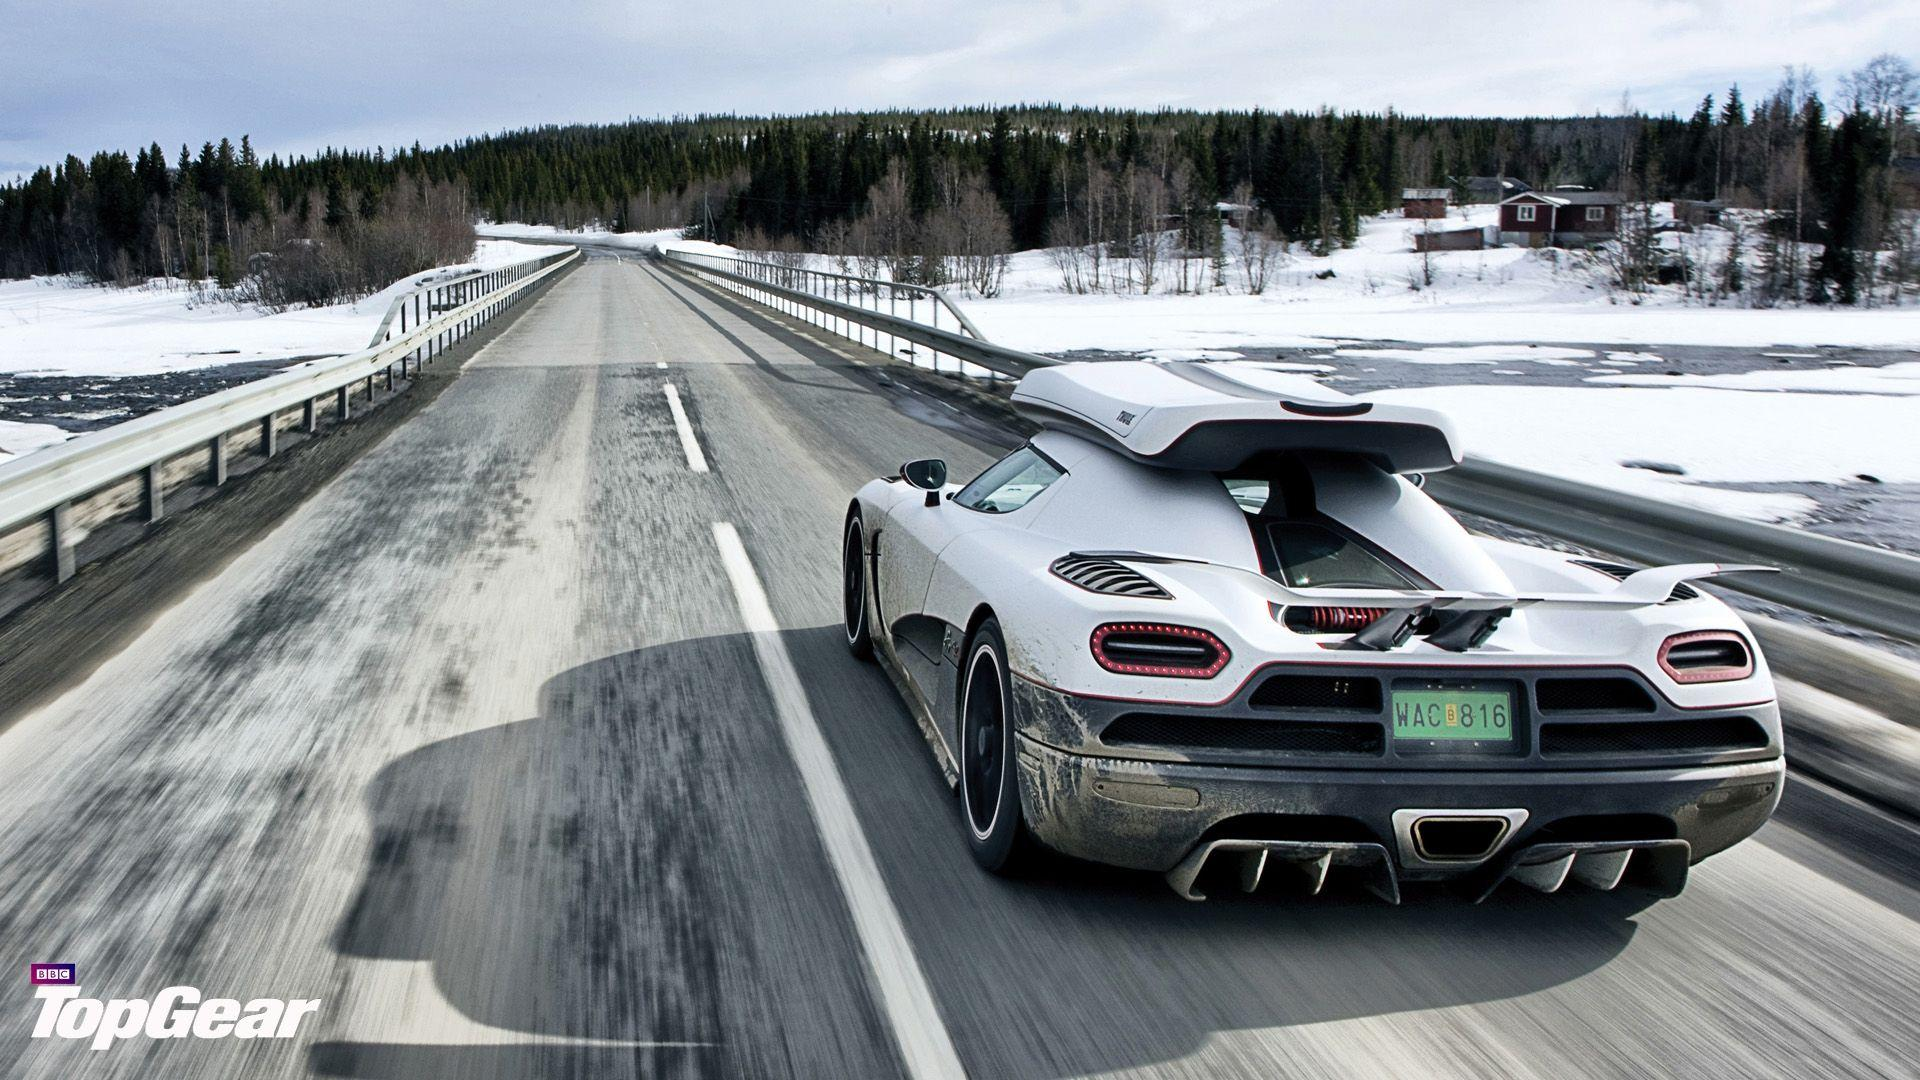 Koenigsegg Agera R Wallpapers High Quality